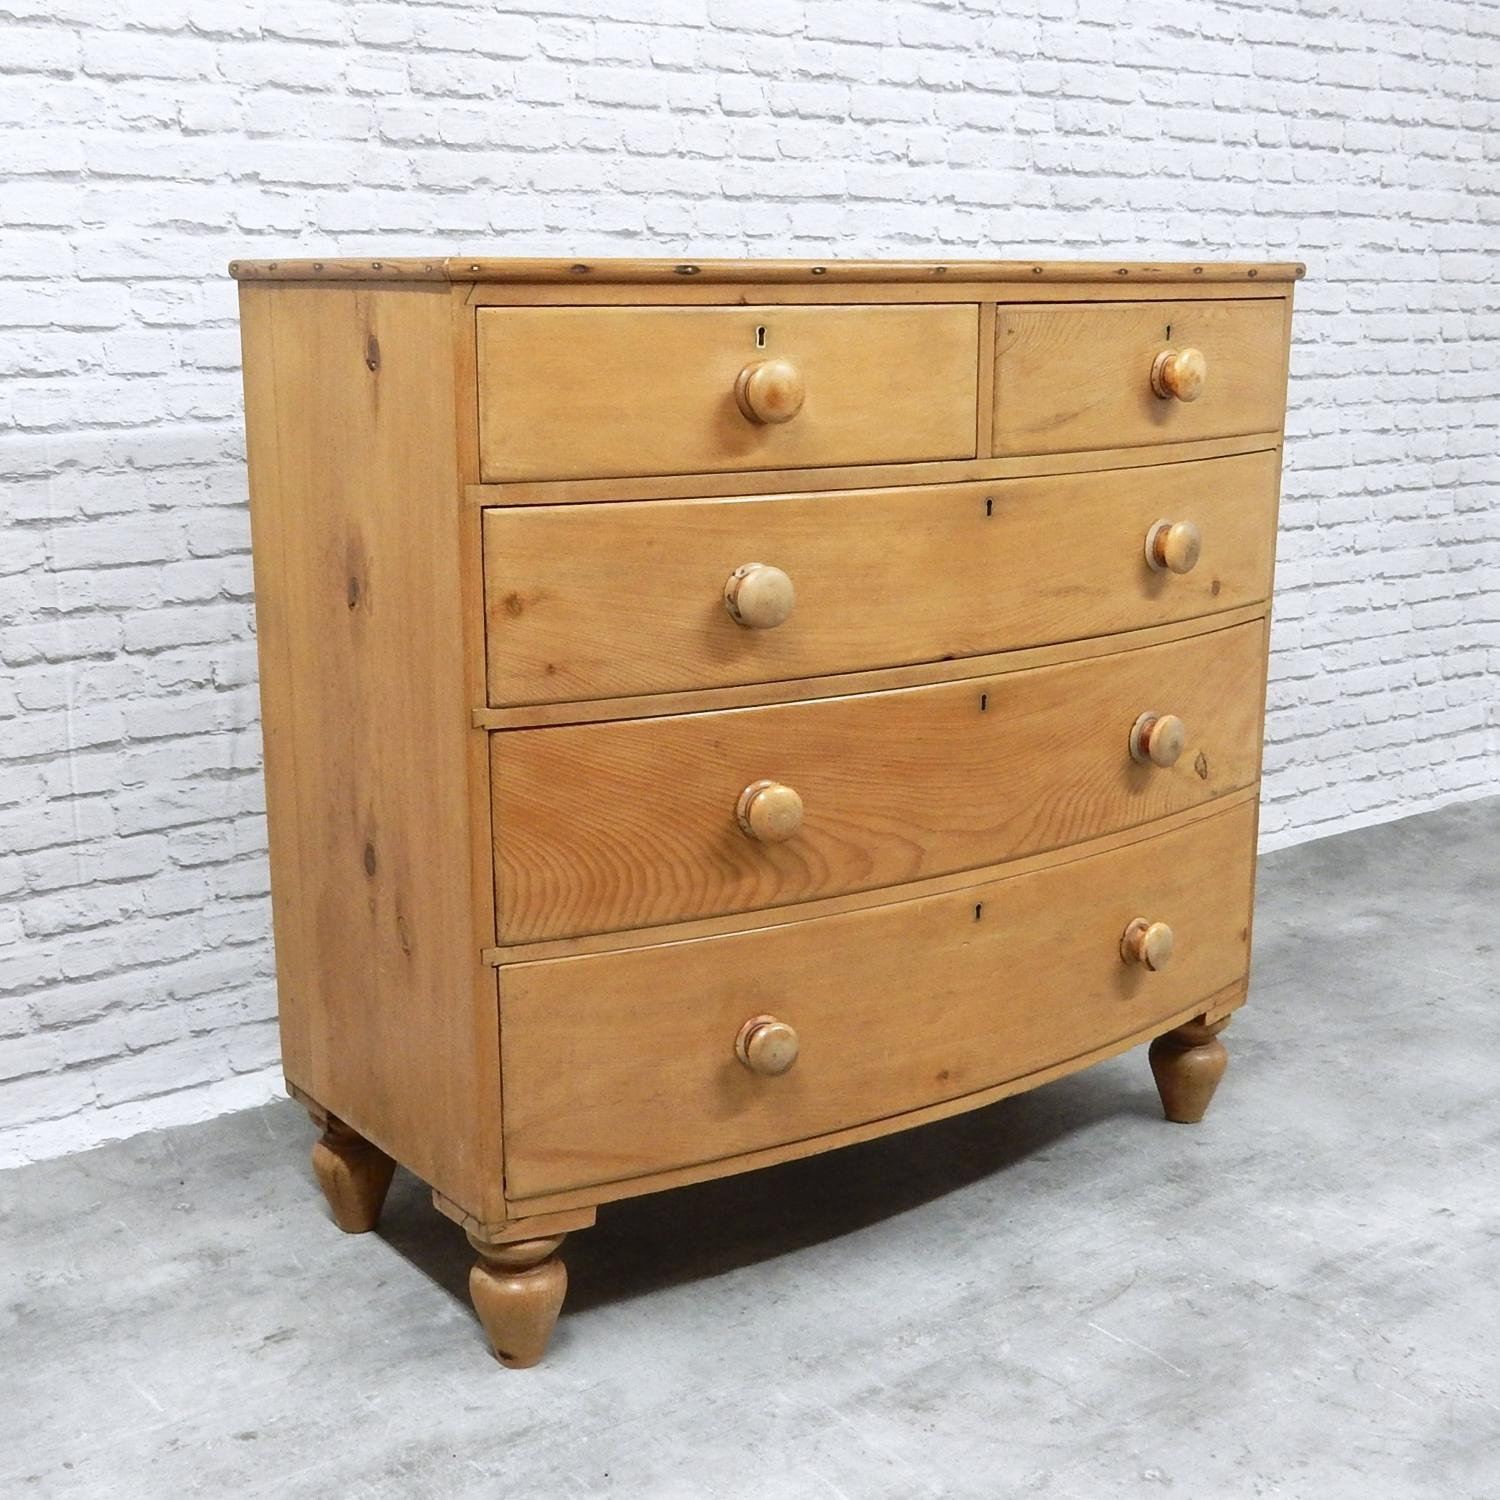 Antique Pine Bow Fronted Chest of Drawers